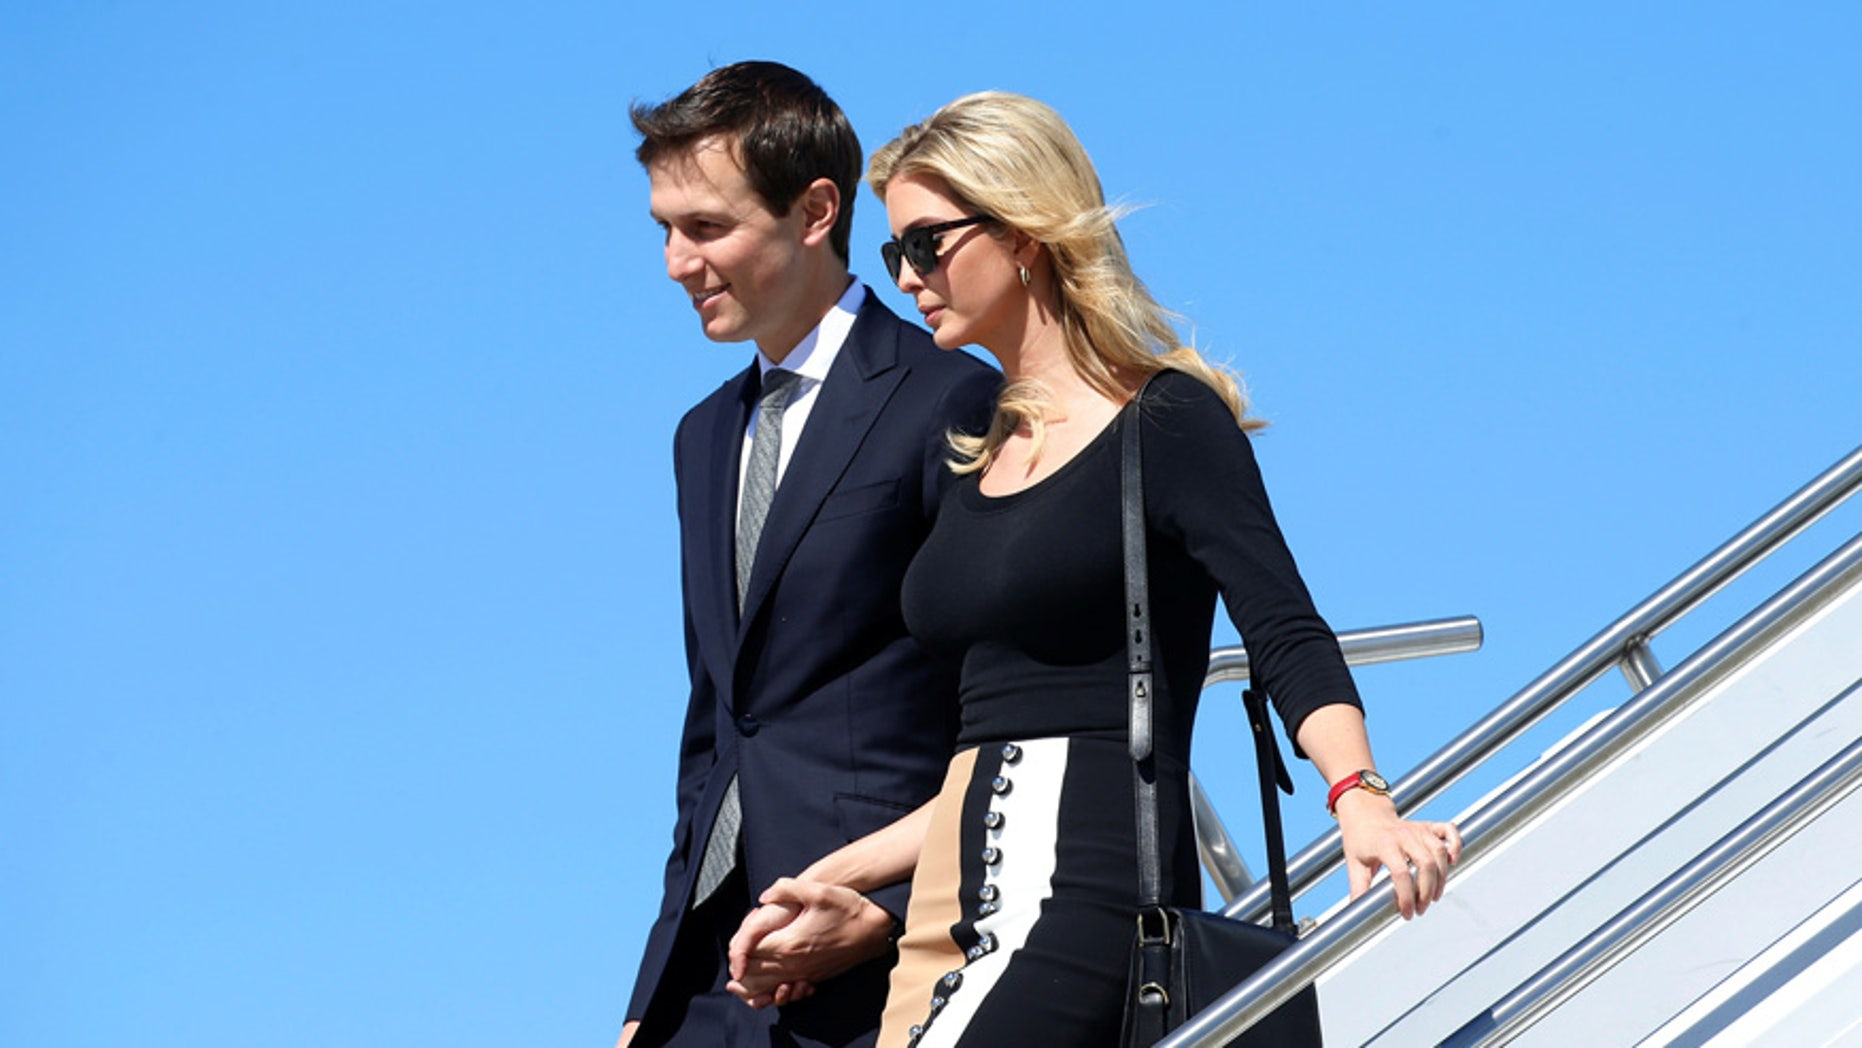 A Brooklyn property developed by President Trump's son-in-law sold for a whopping $12.9 million.